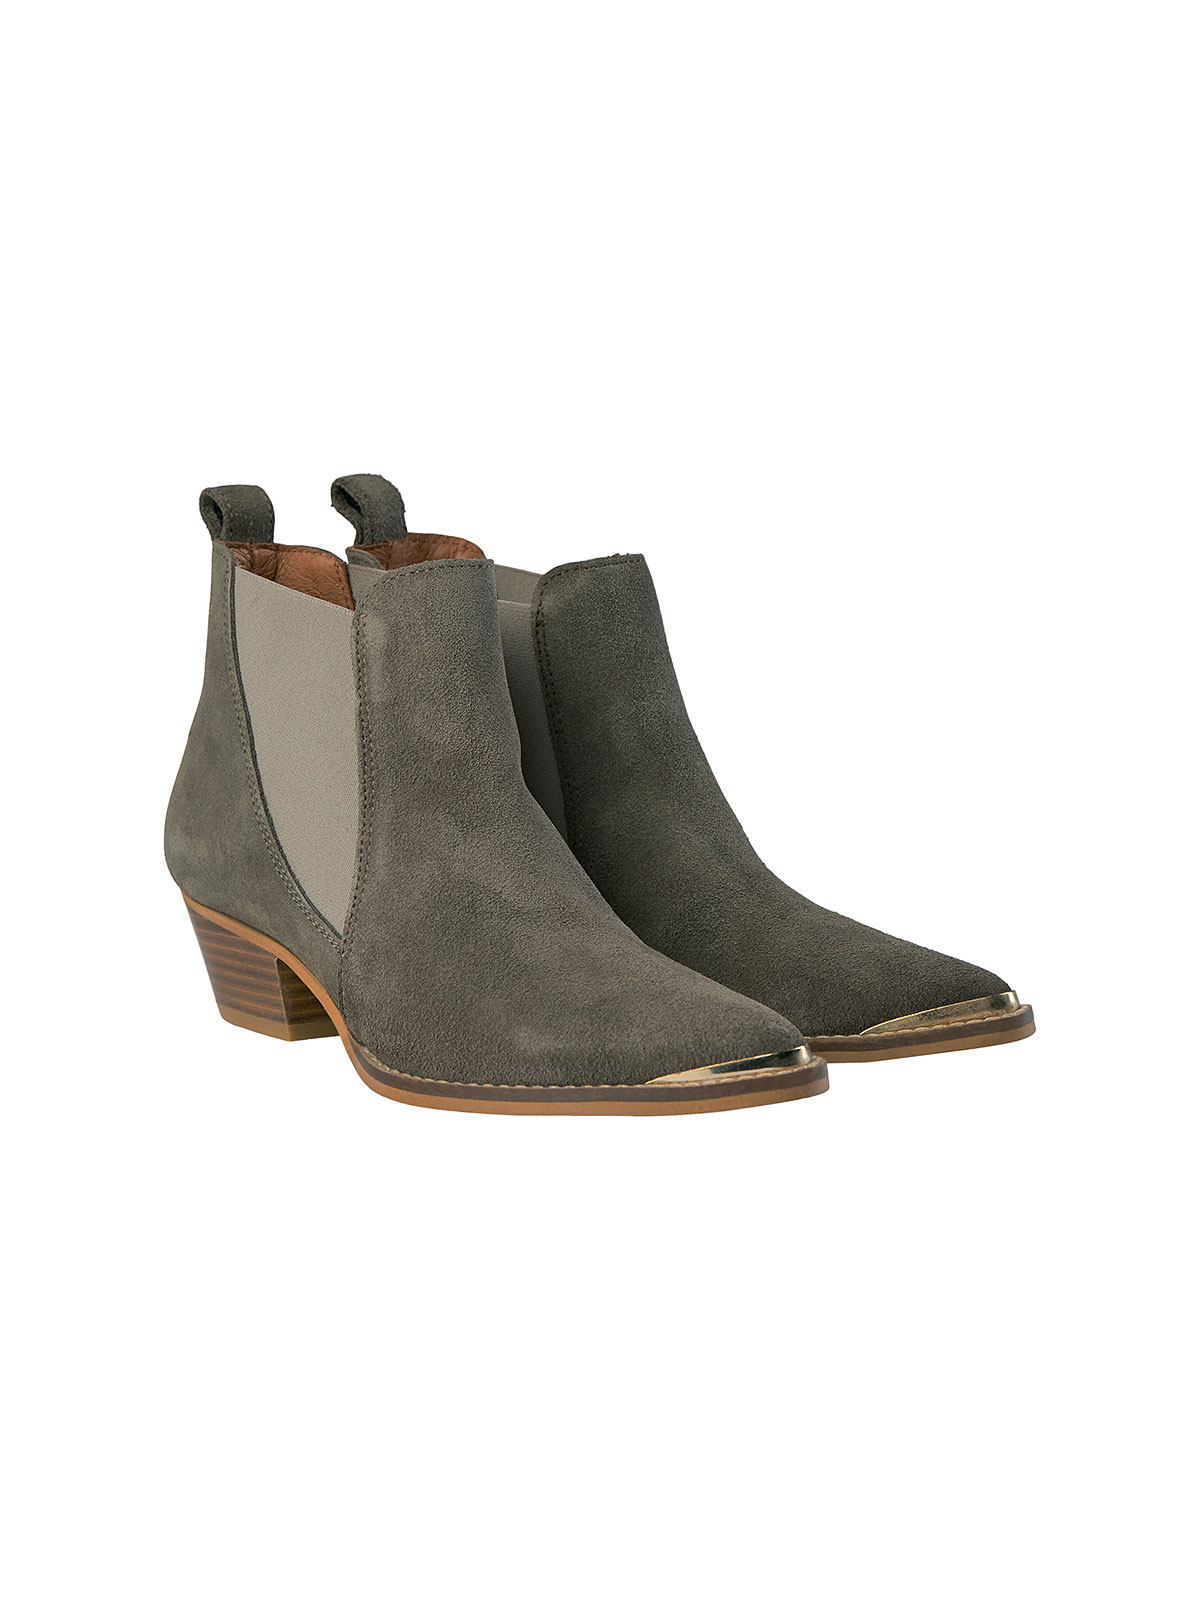 Mos Mosh Dallas Boot Dark taupe | Womens clothing | Chopin